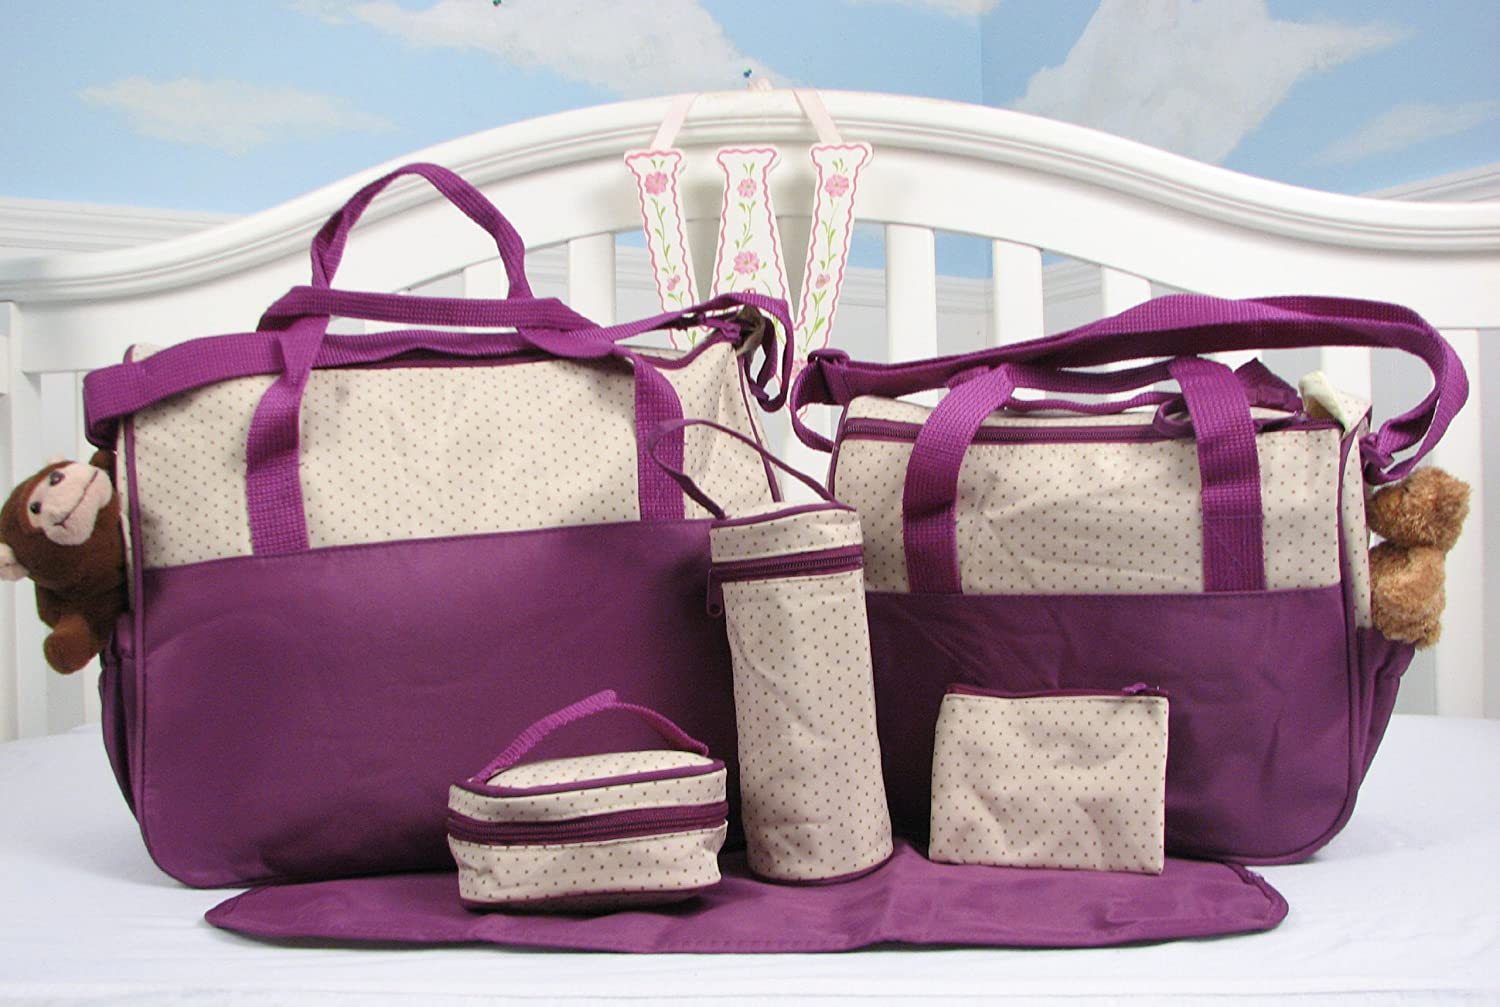 Amazon.com : SoHo- Lavender Diaper bag with changing pad 6 pieces set : Diaper Tote Bags